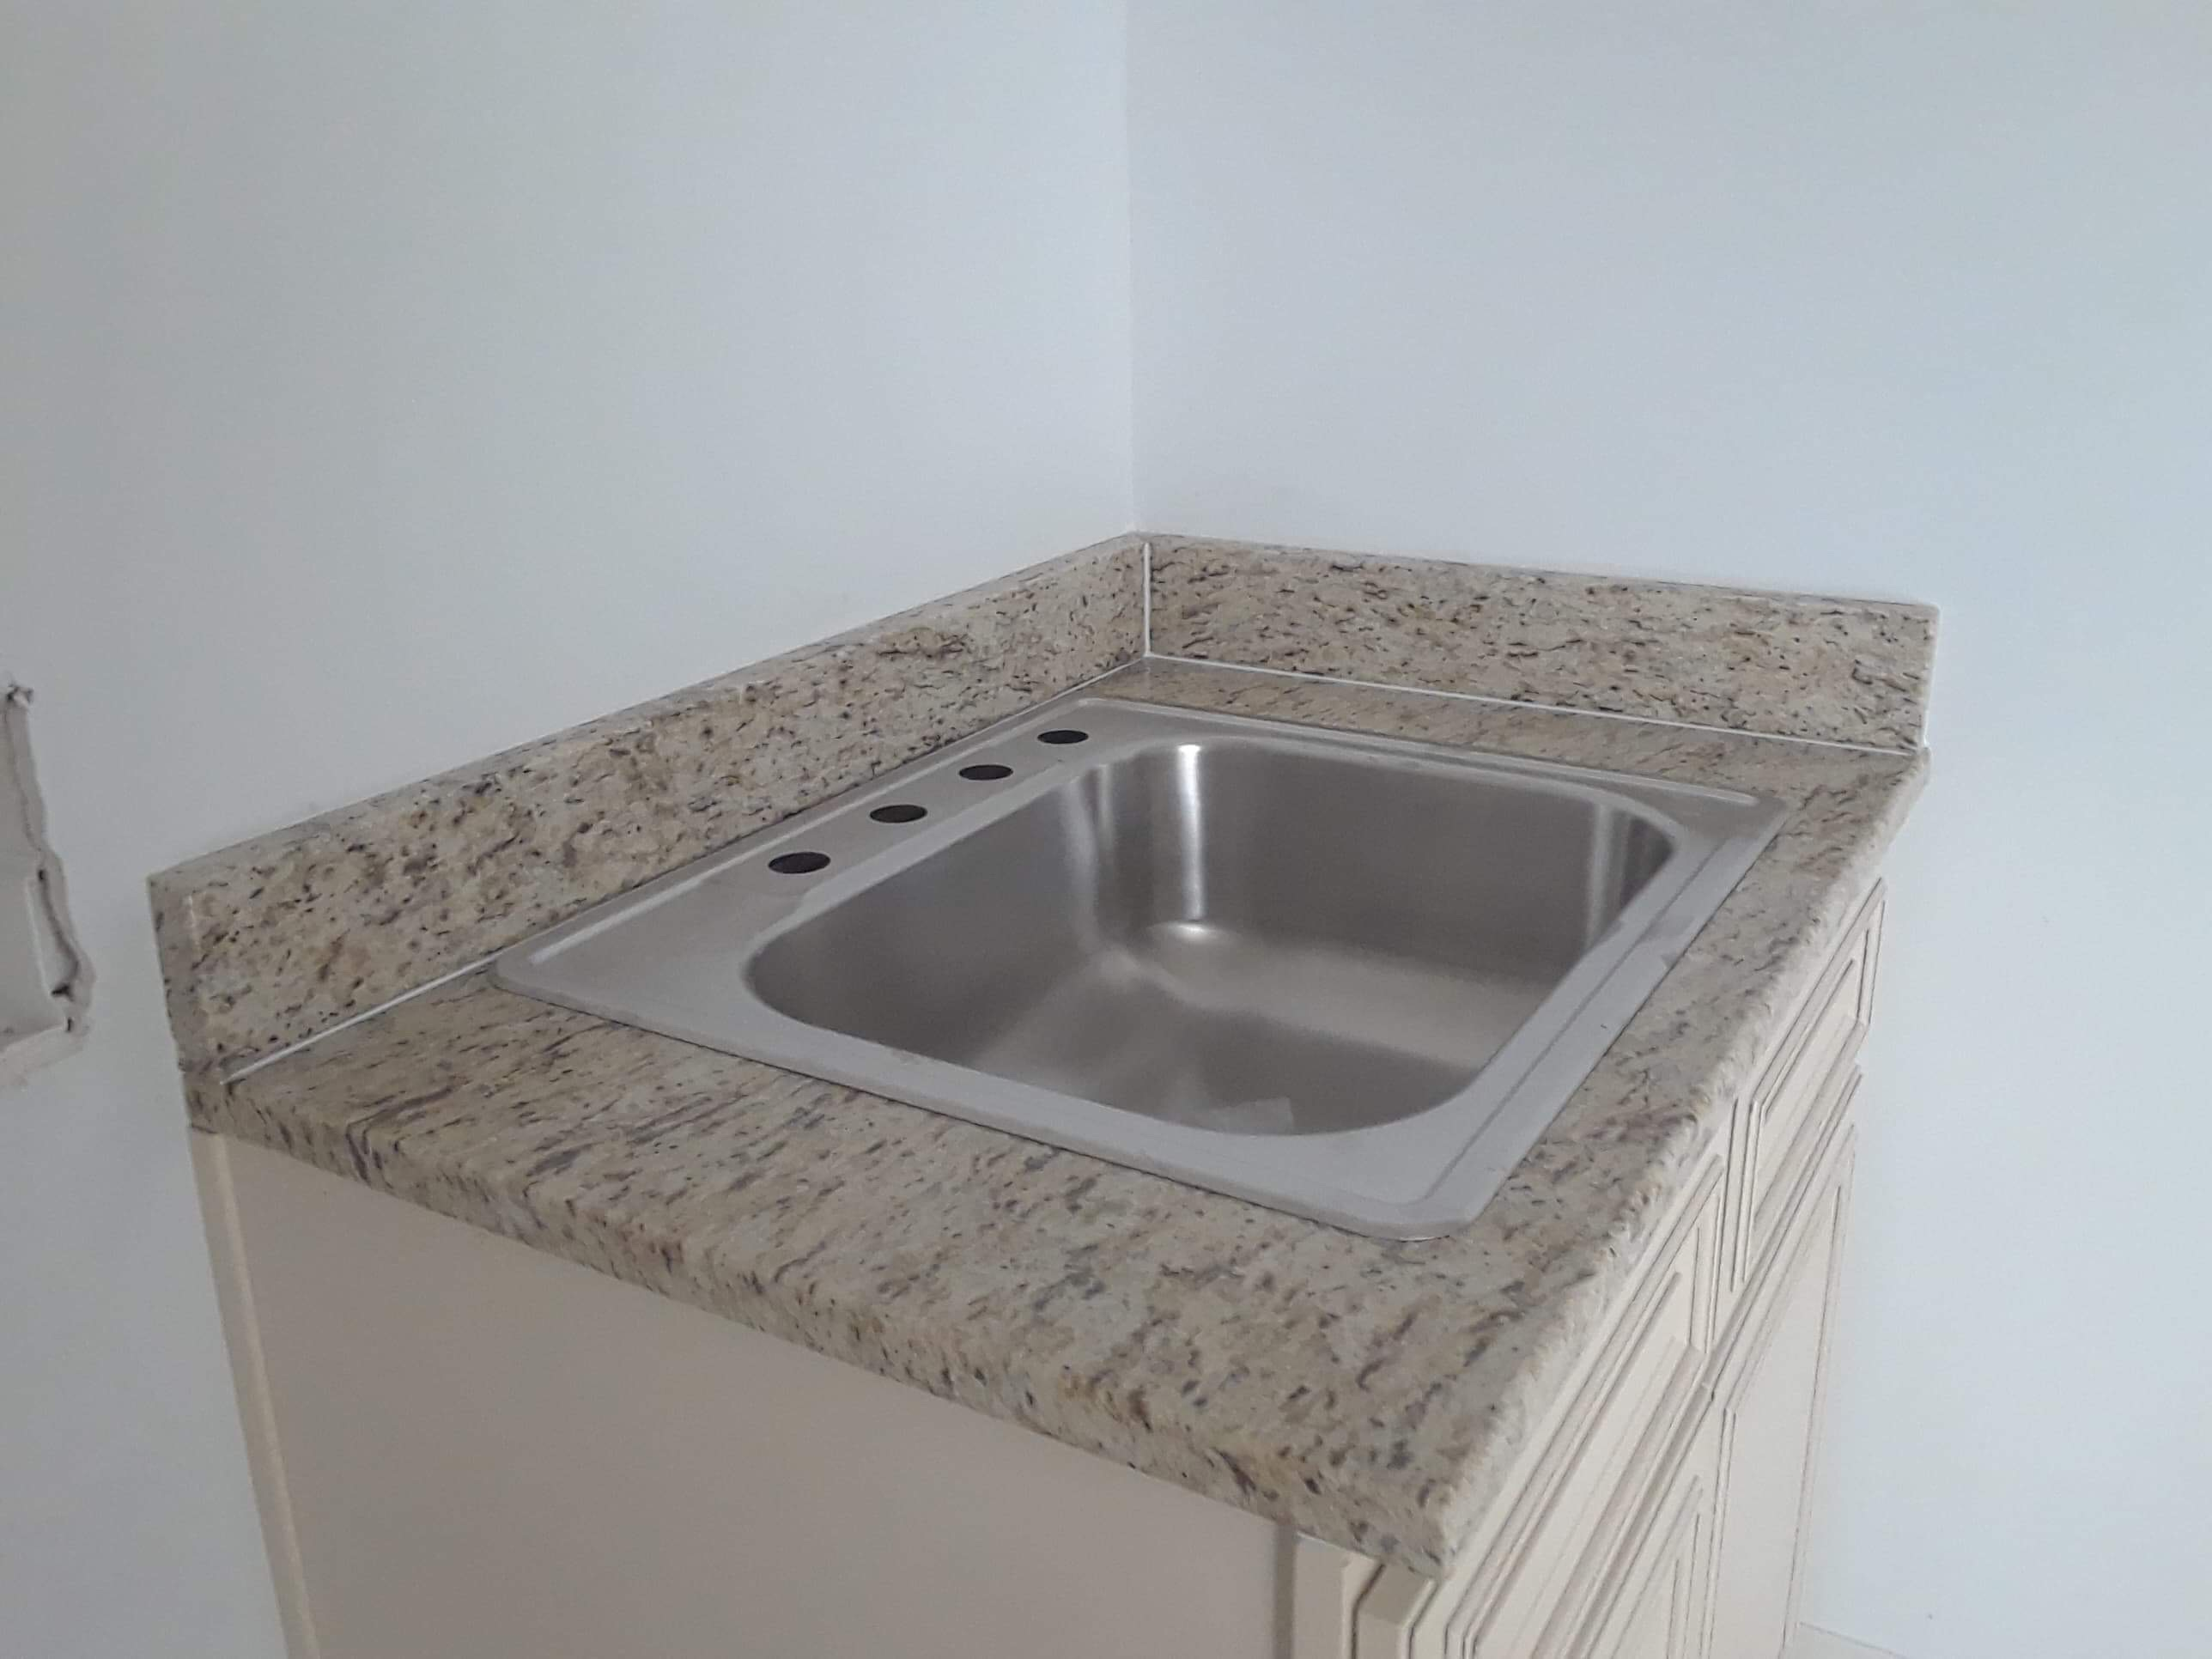 3cm Giallo Ornamental_Laundry with Undermount Single Bowl Sink(2)_Liles